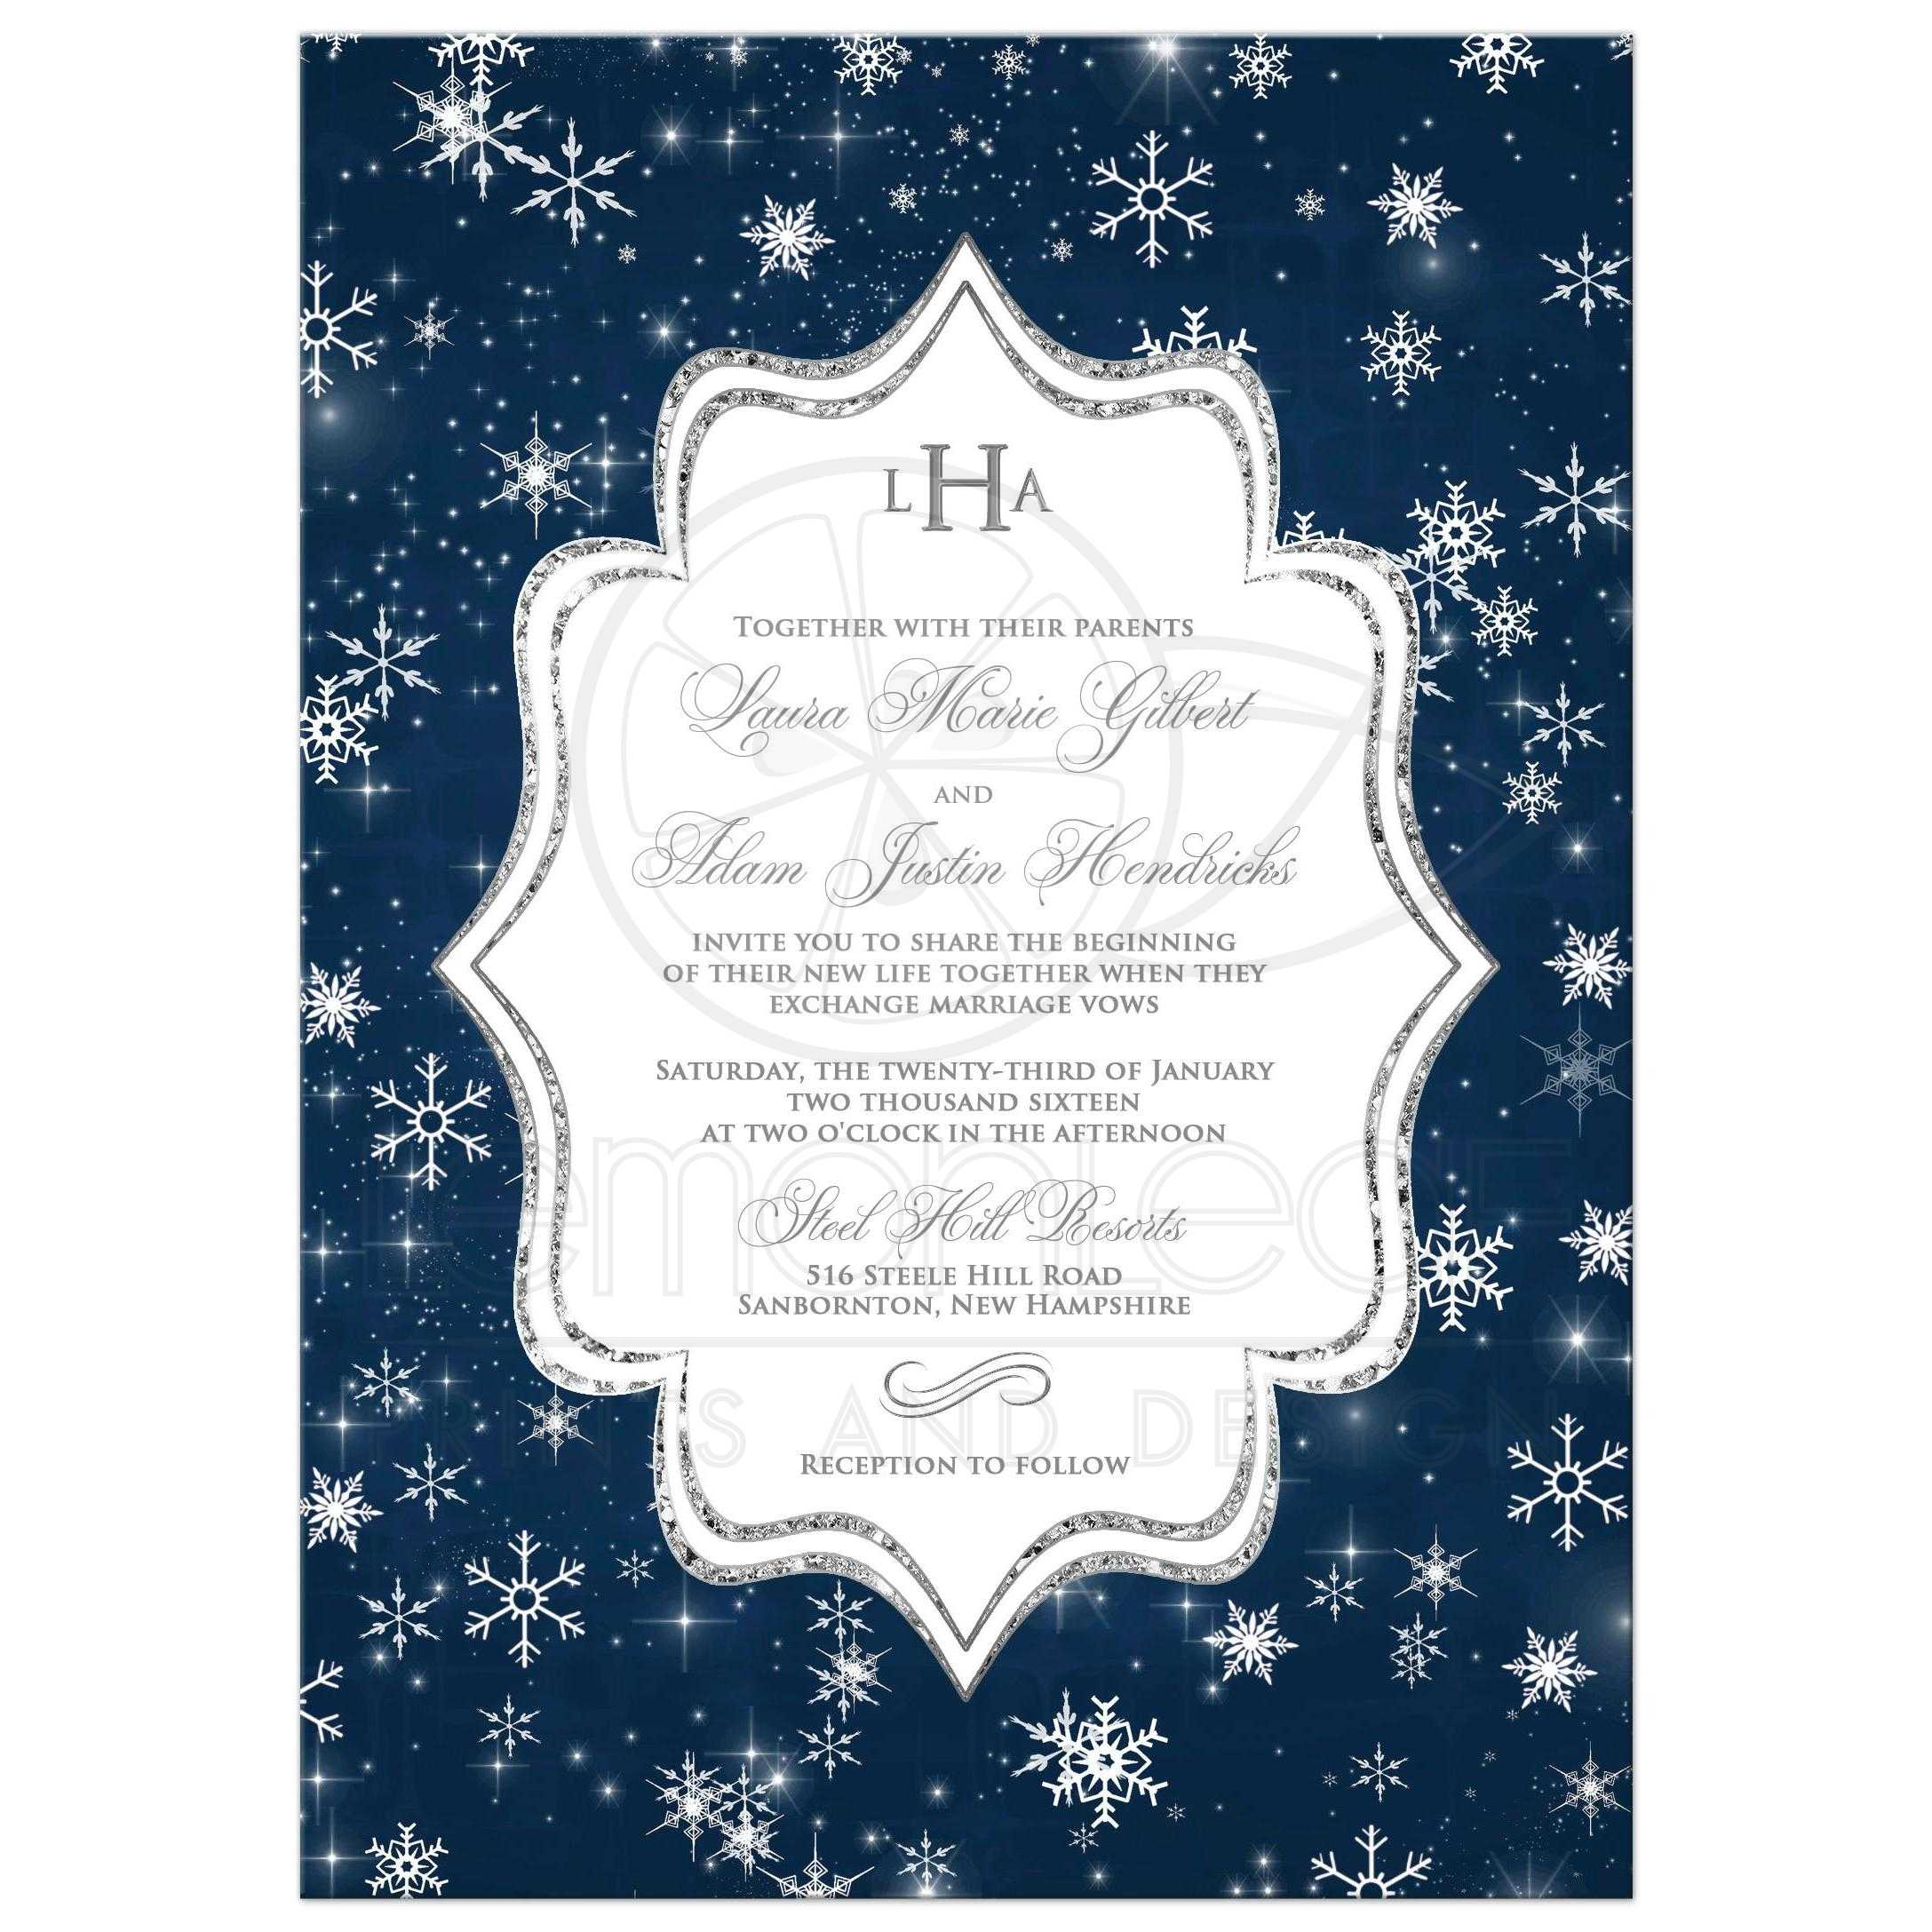 Winter Wonderland Wedding Invitation In Navy Blue, White And Silver  Snowflakes And Glitter ...